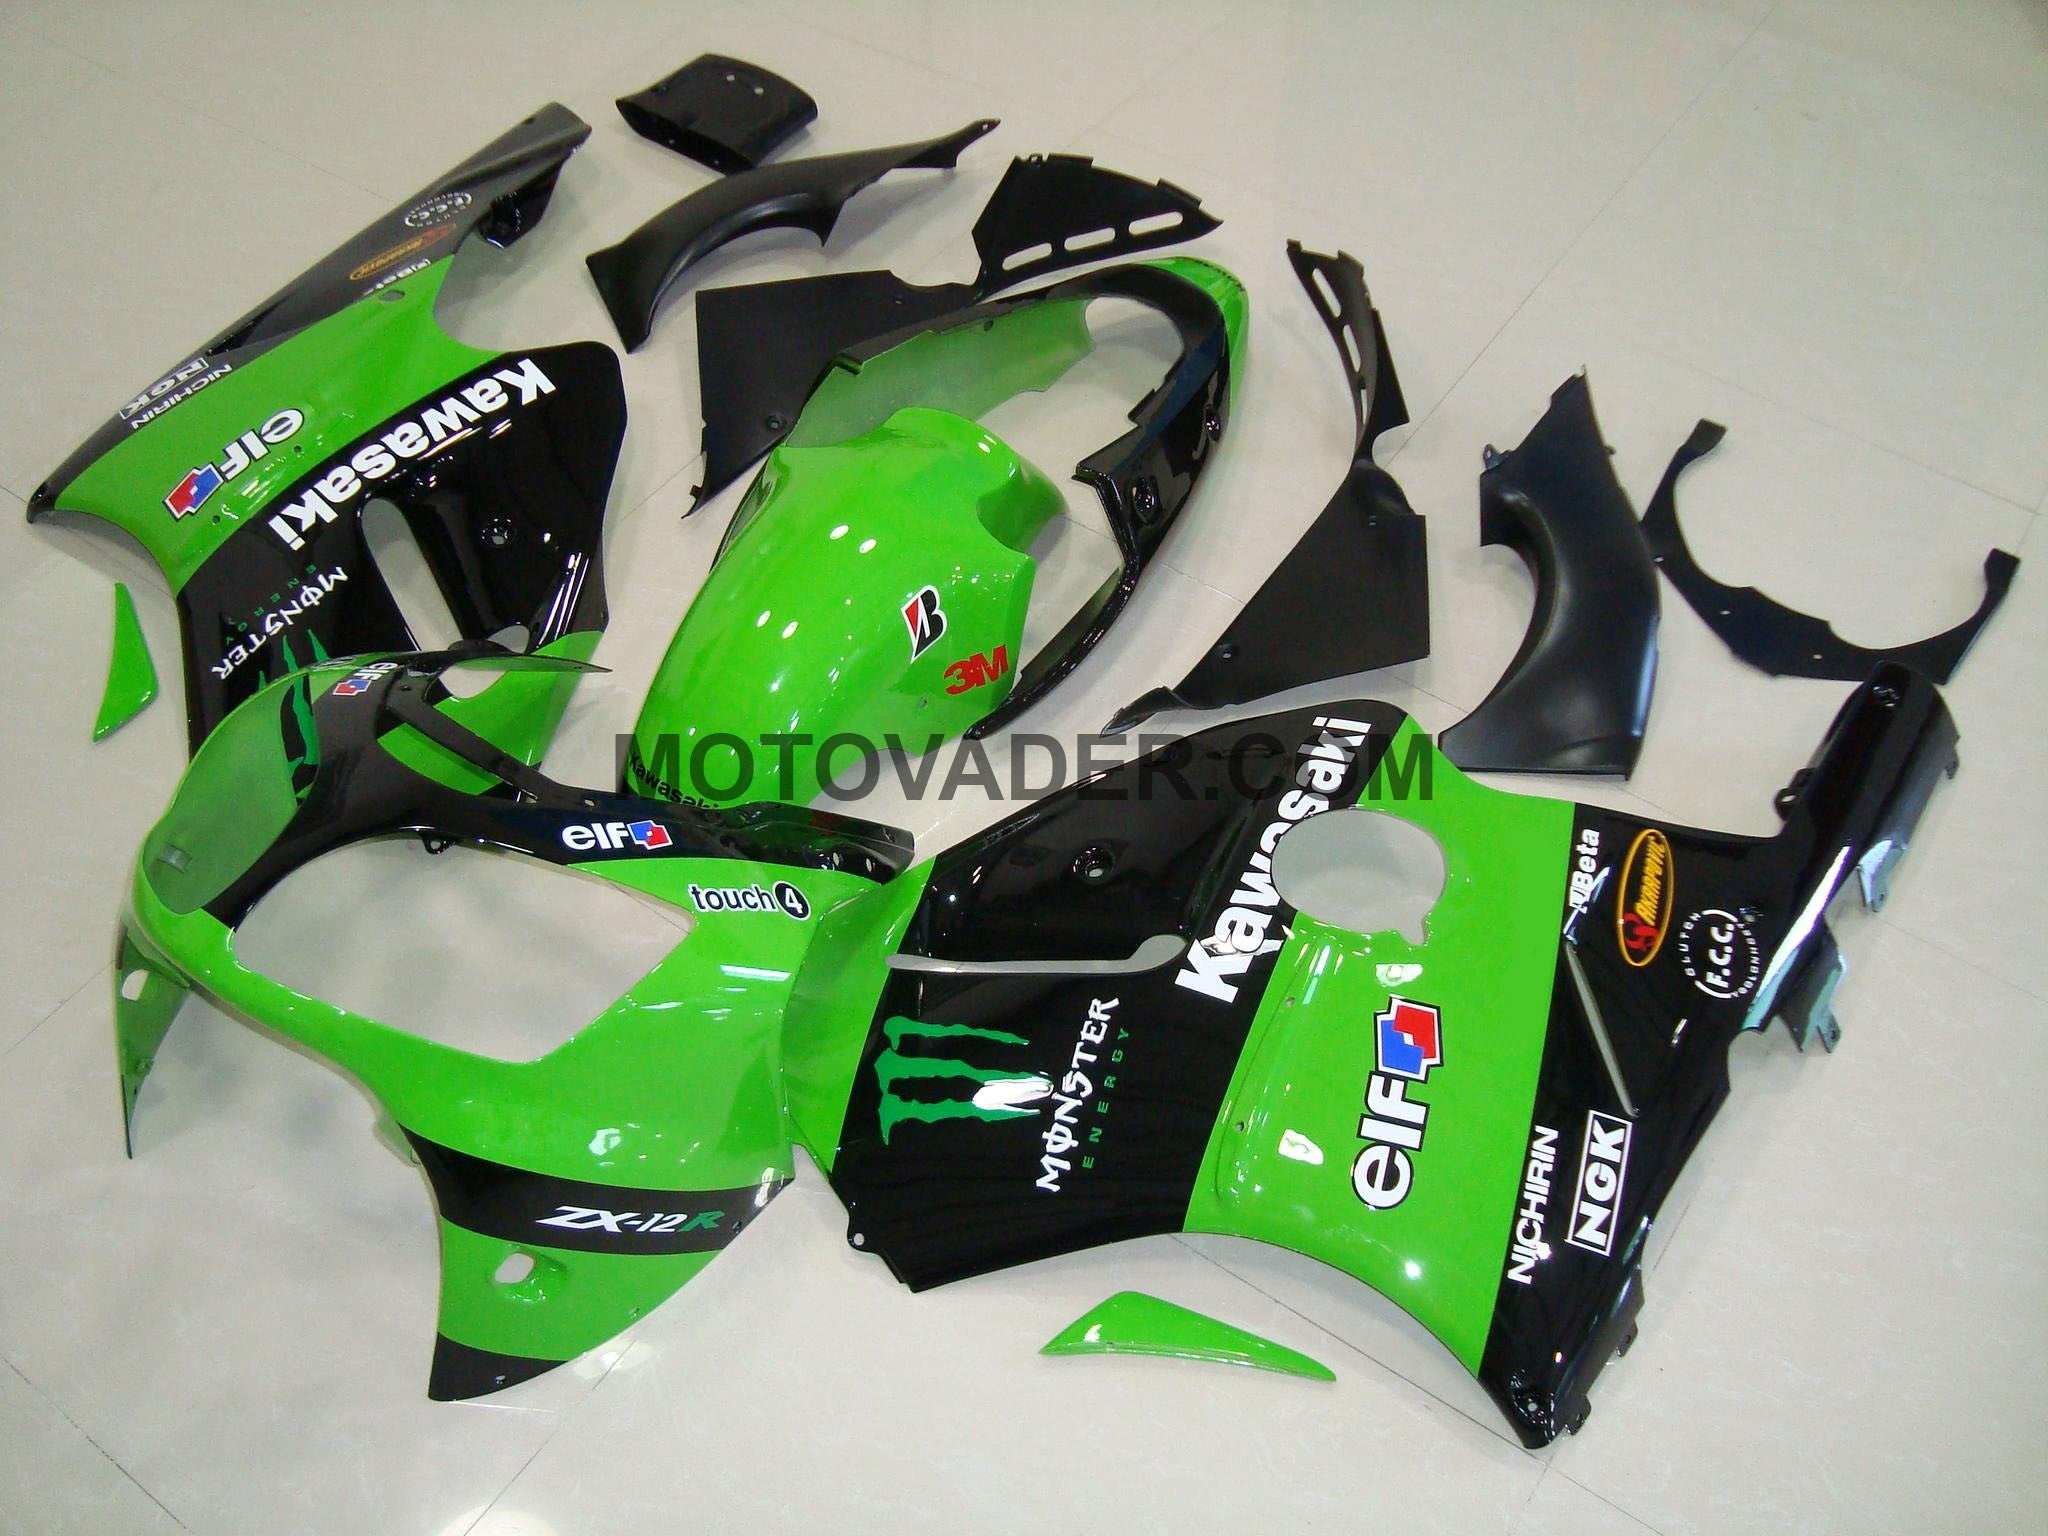 Kawasaki ZX-12R 2000-2001 Green Monster Fairing